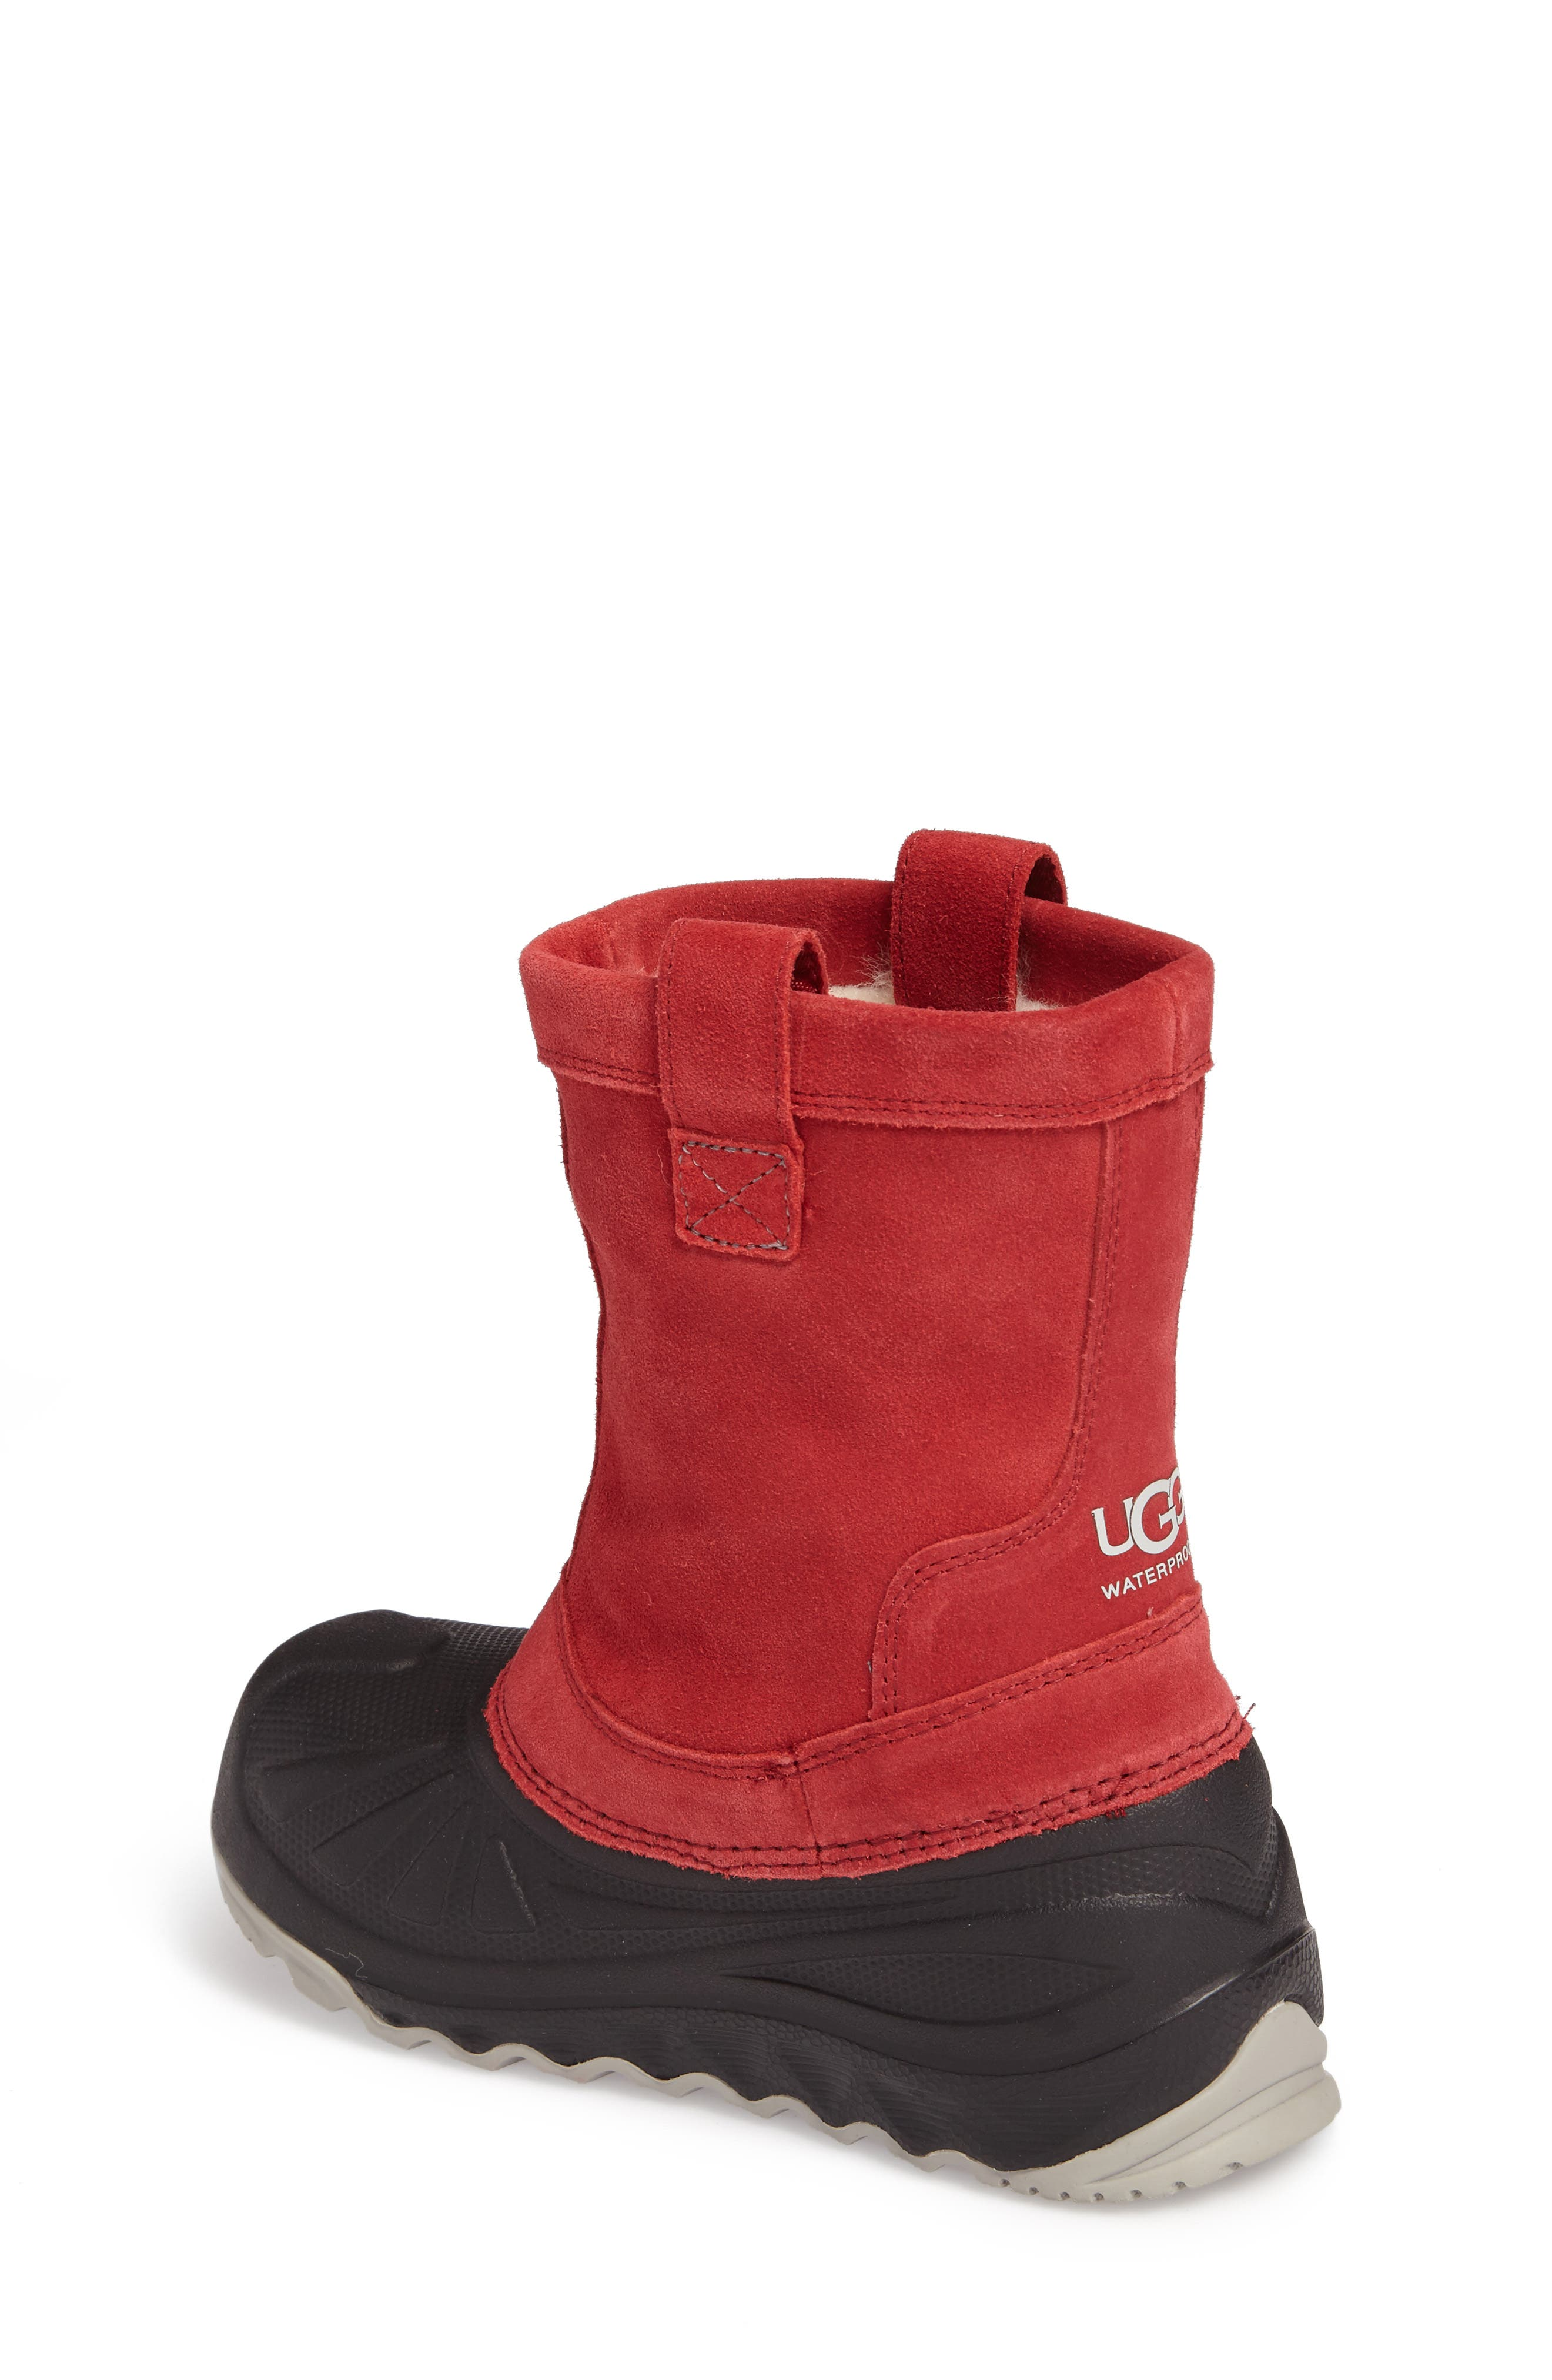 Evertt Waterproof Thinsulate<sup>™</sup> Insulated Snow Boot,                             Alternate thumbnail 4, color,